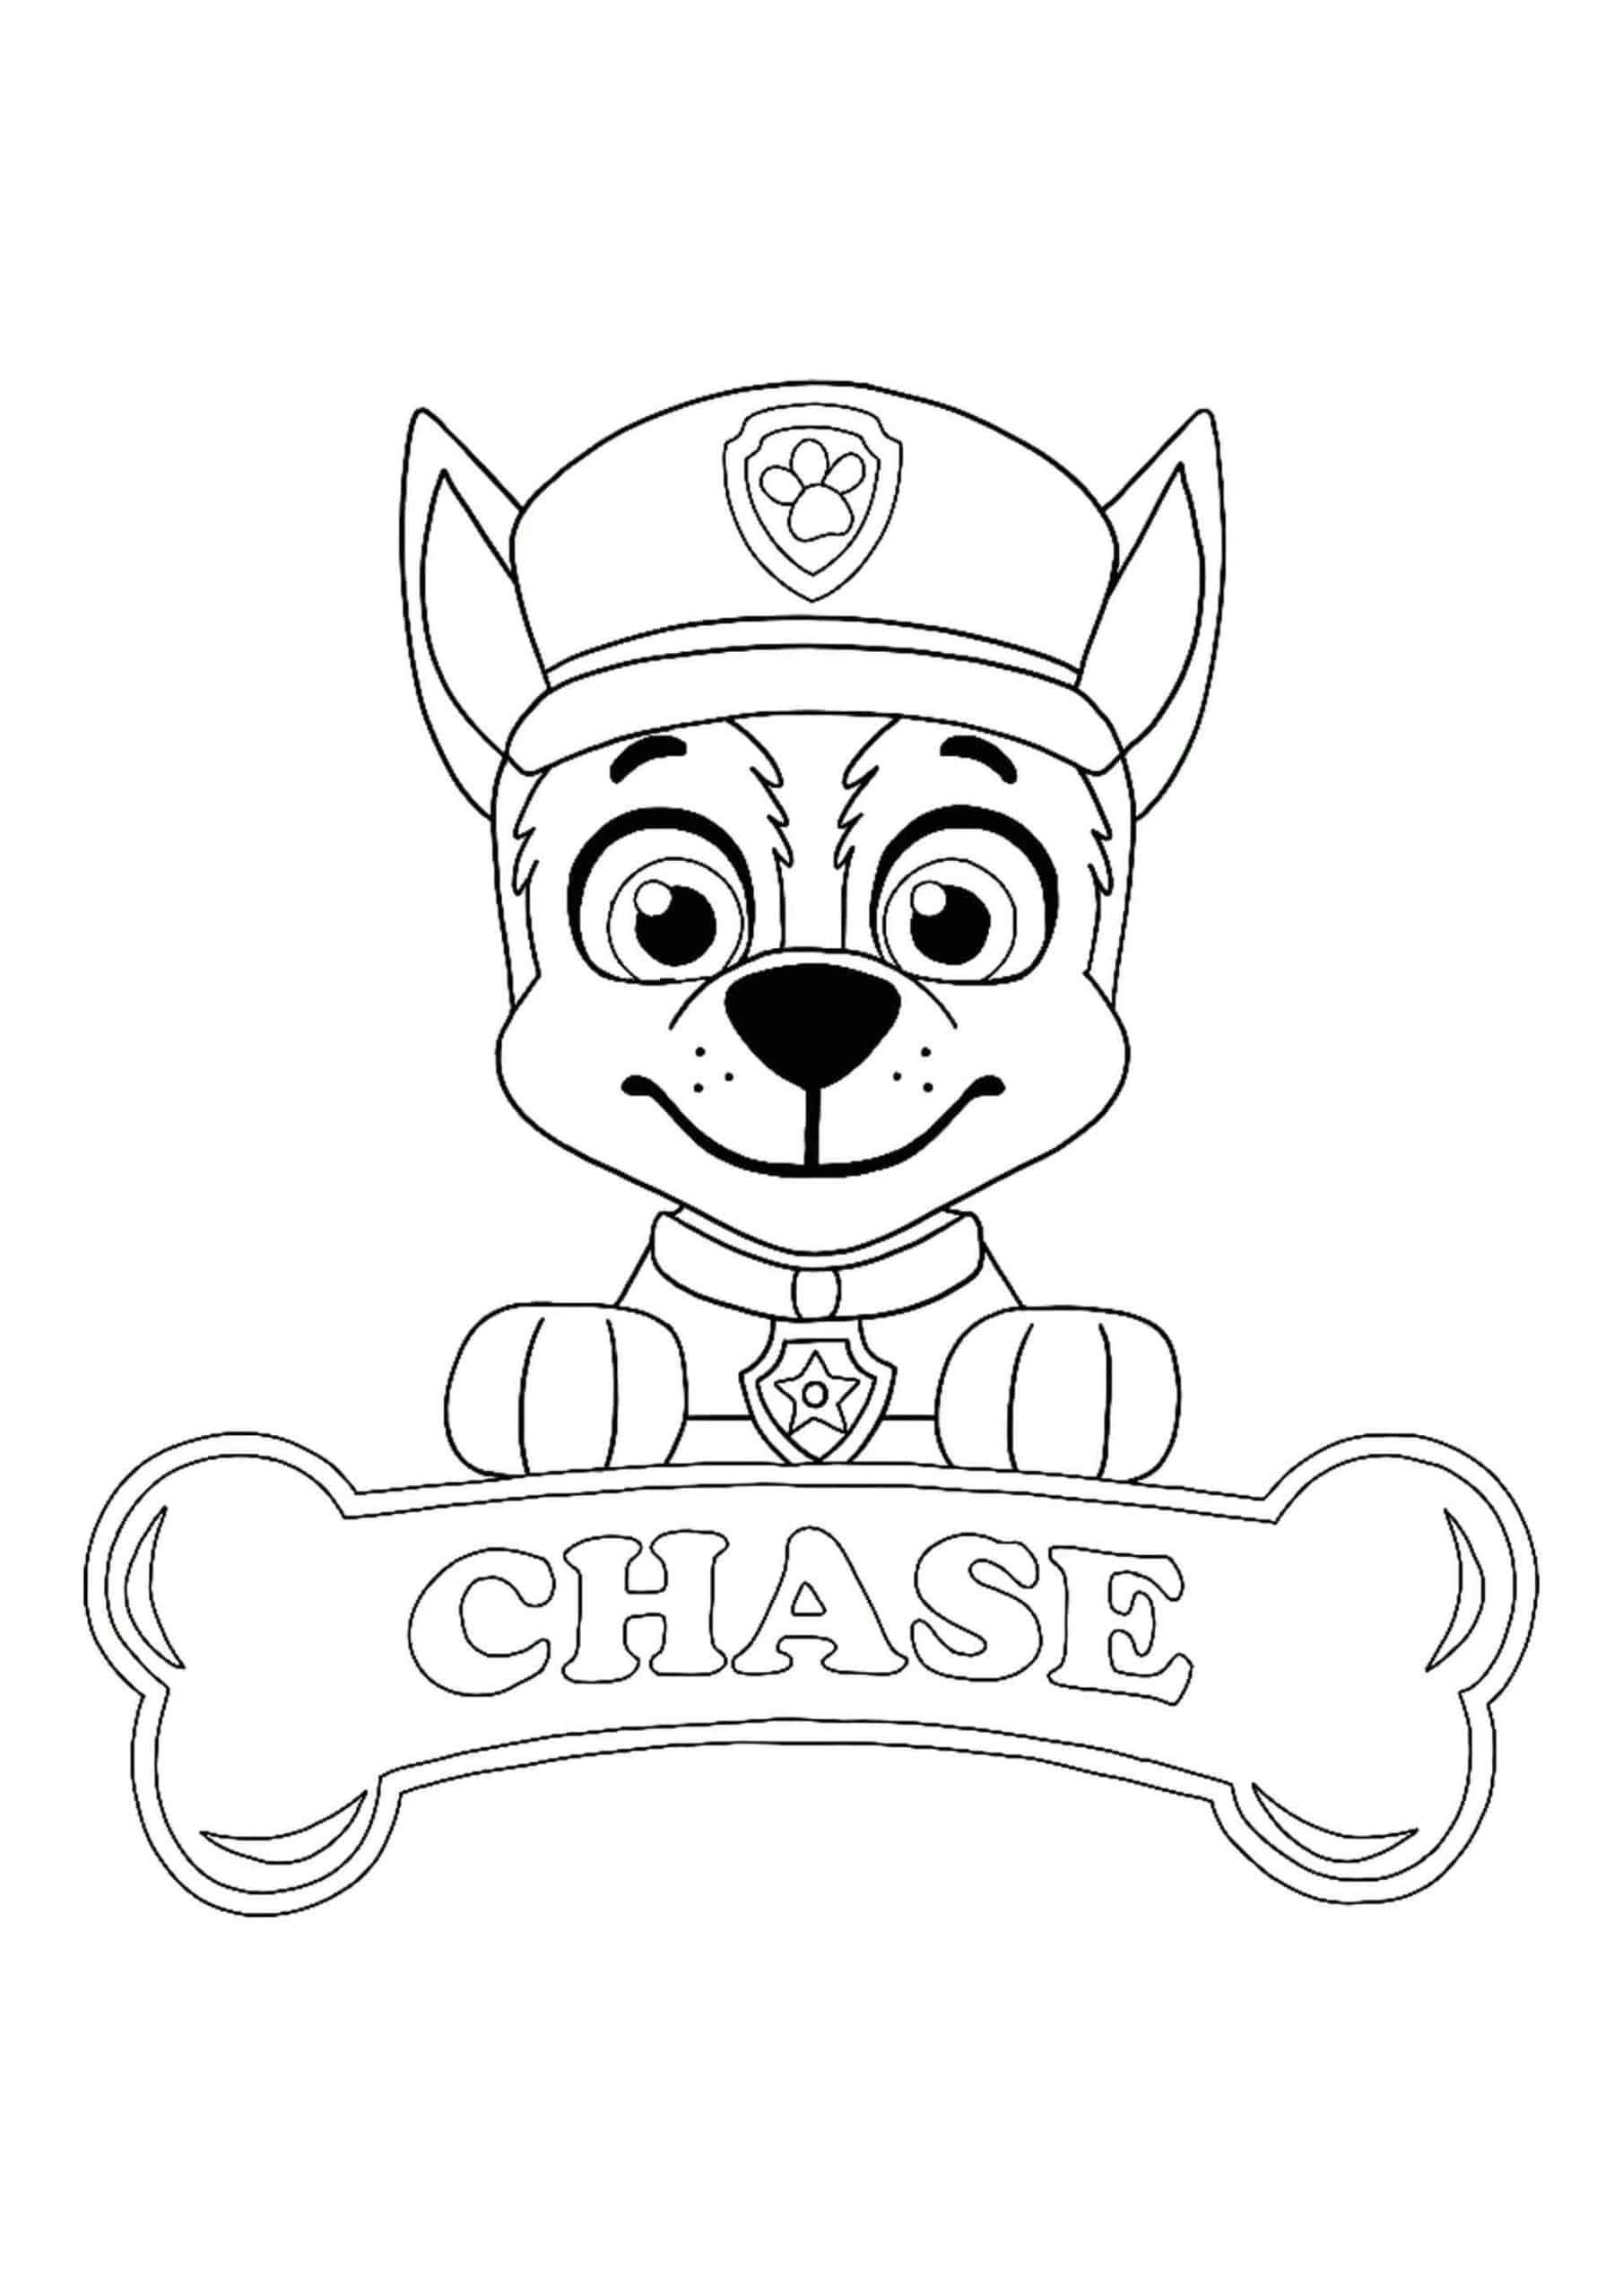 paw patrol sweetie coloring pages coloring pages for kids paw patrol paw patrol coloring pages patrol sweetie coloring paw